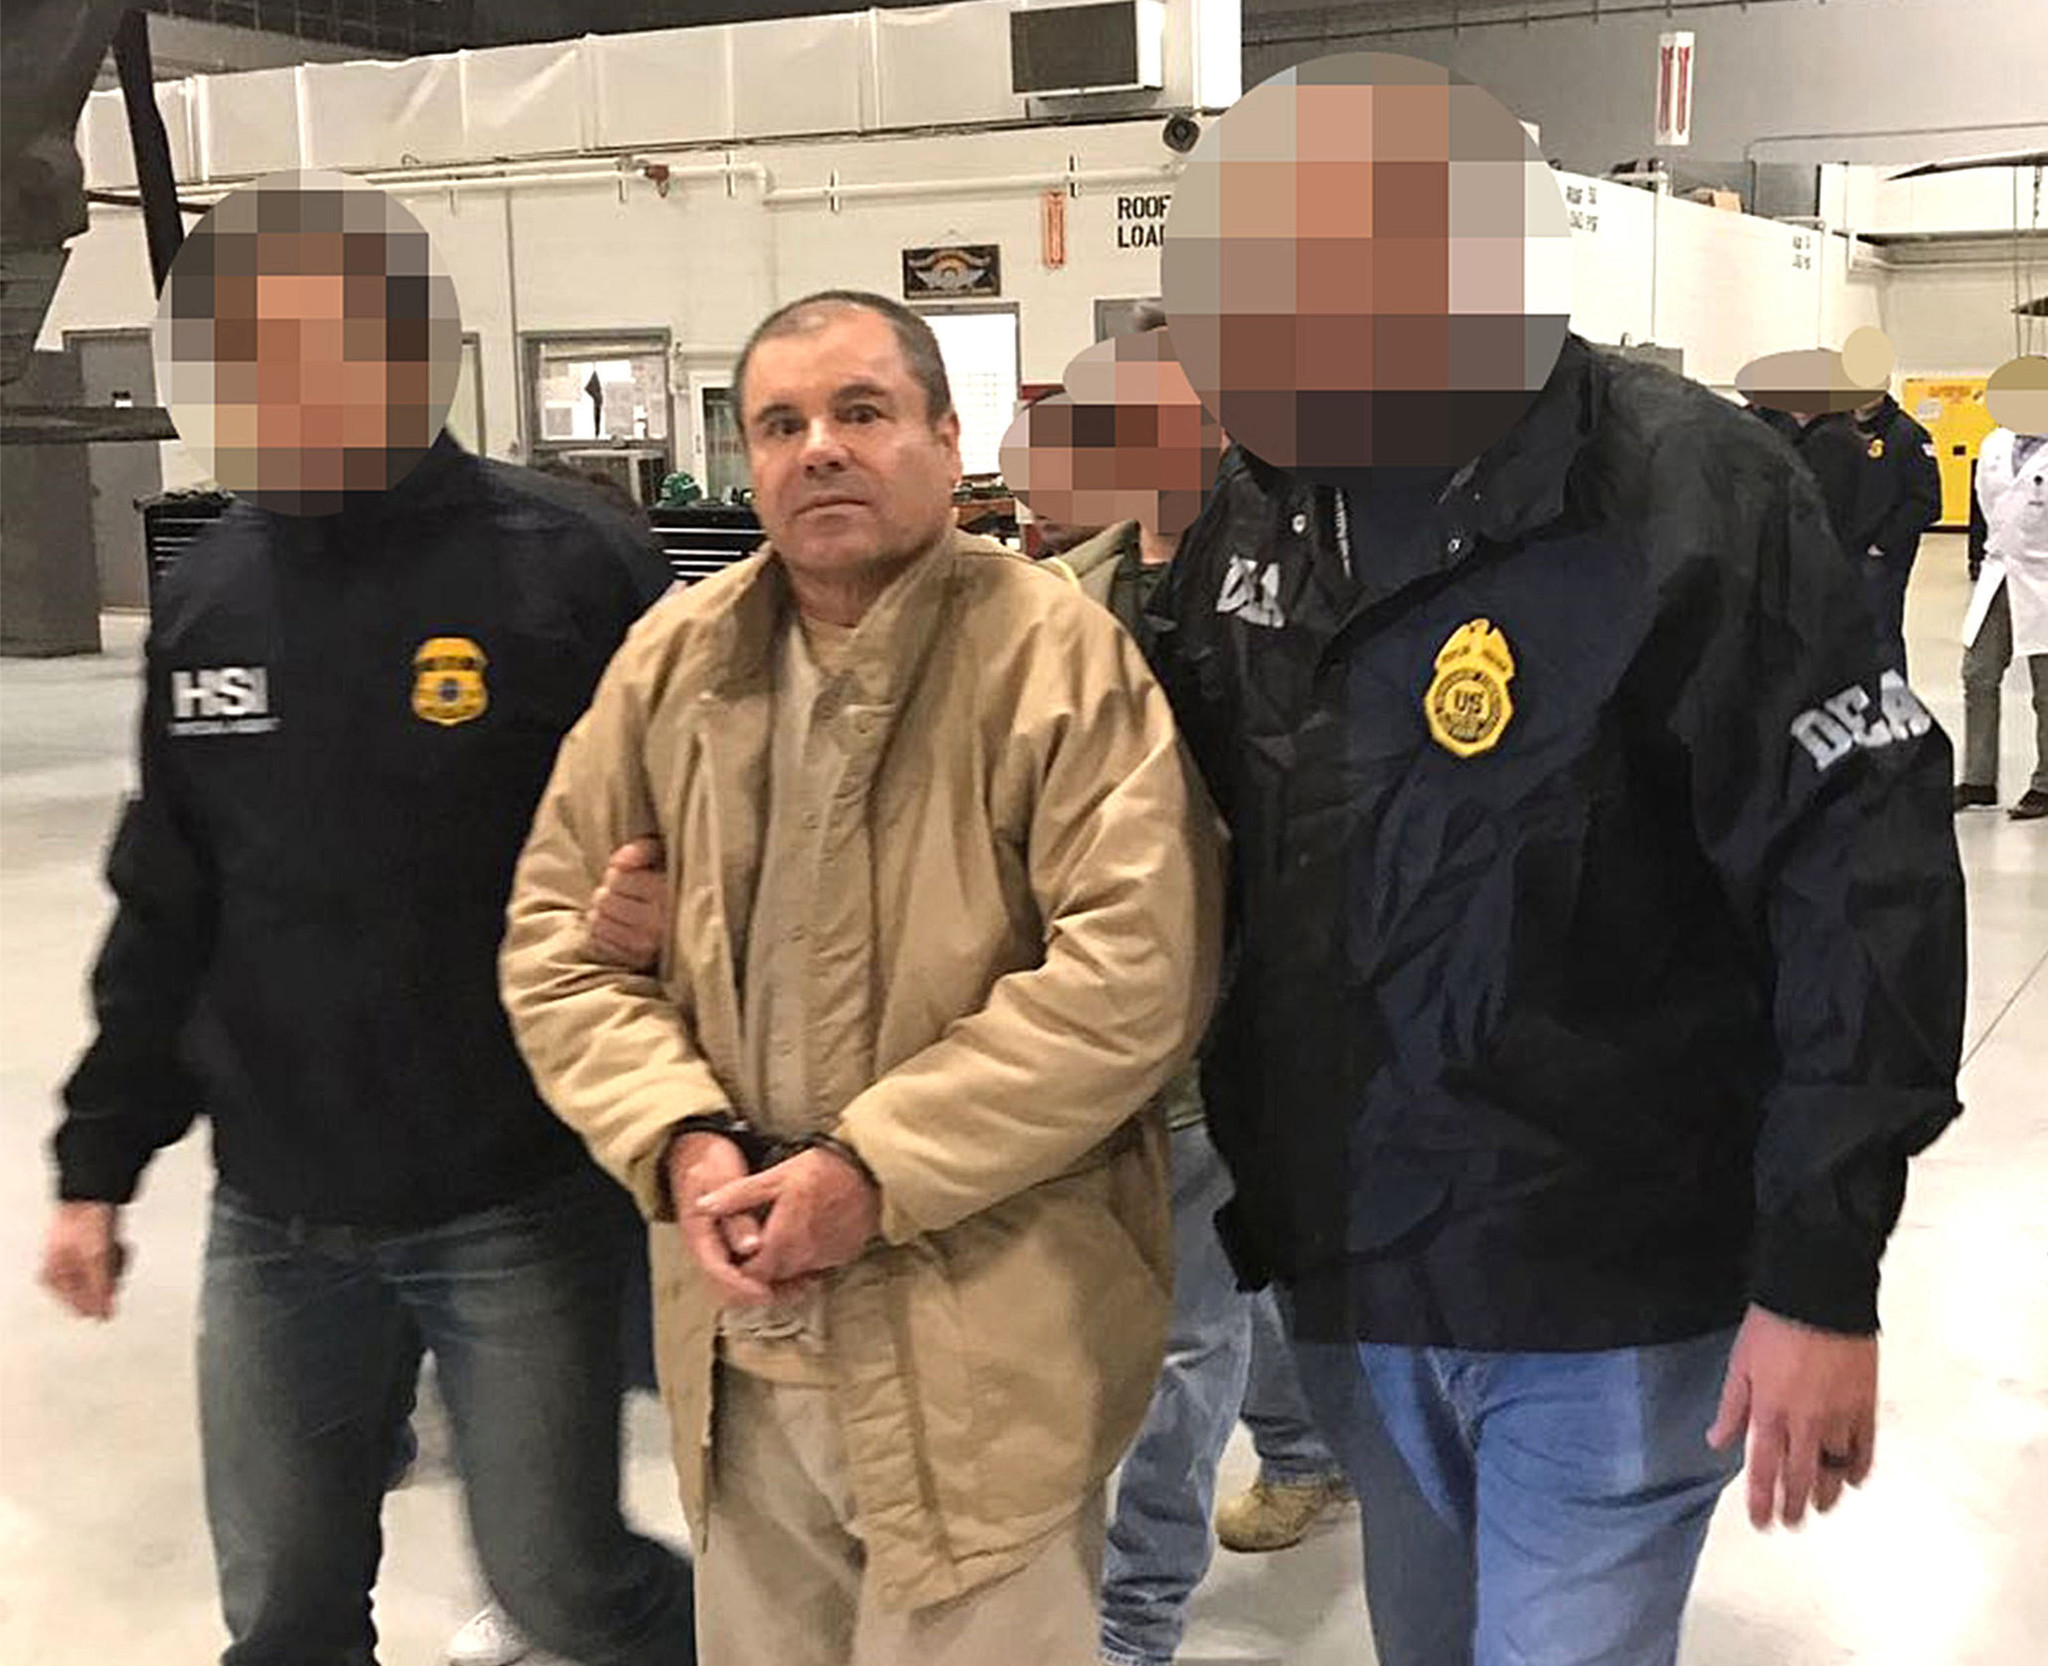 El Chapo's lawyers raise concerns over allegations of jury misconduct